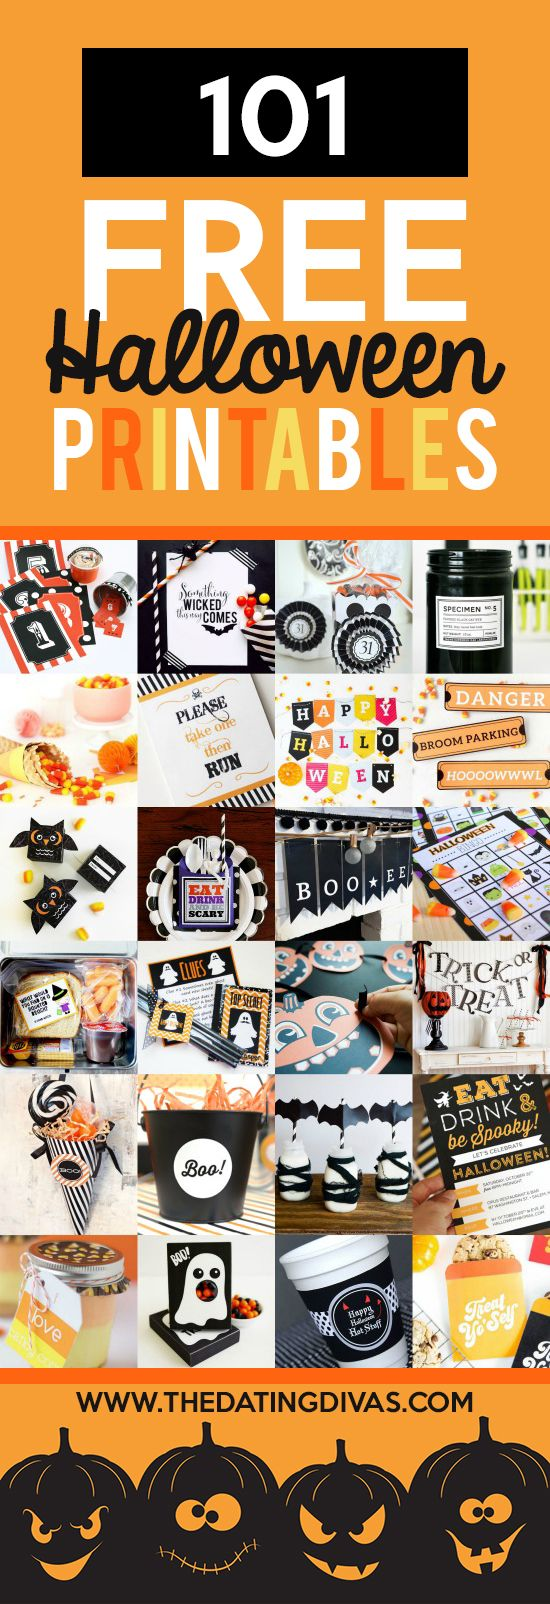 Over 100 FREE Halloween printables! This list is amazing! www.TheDatingDiva...